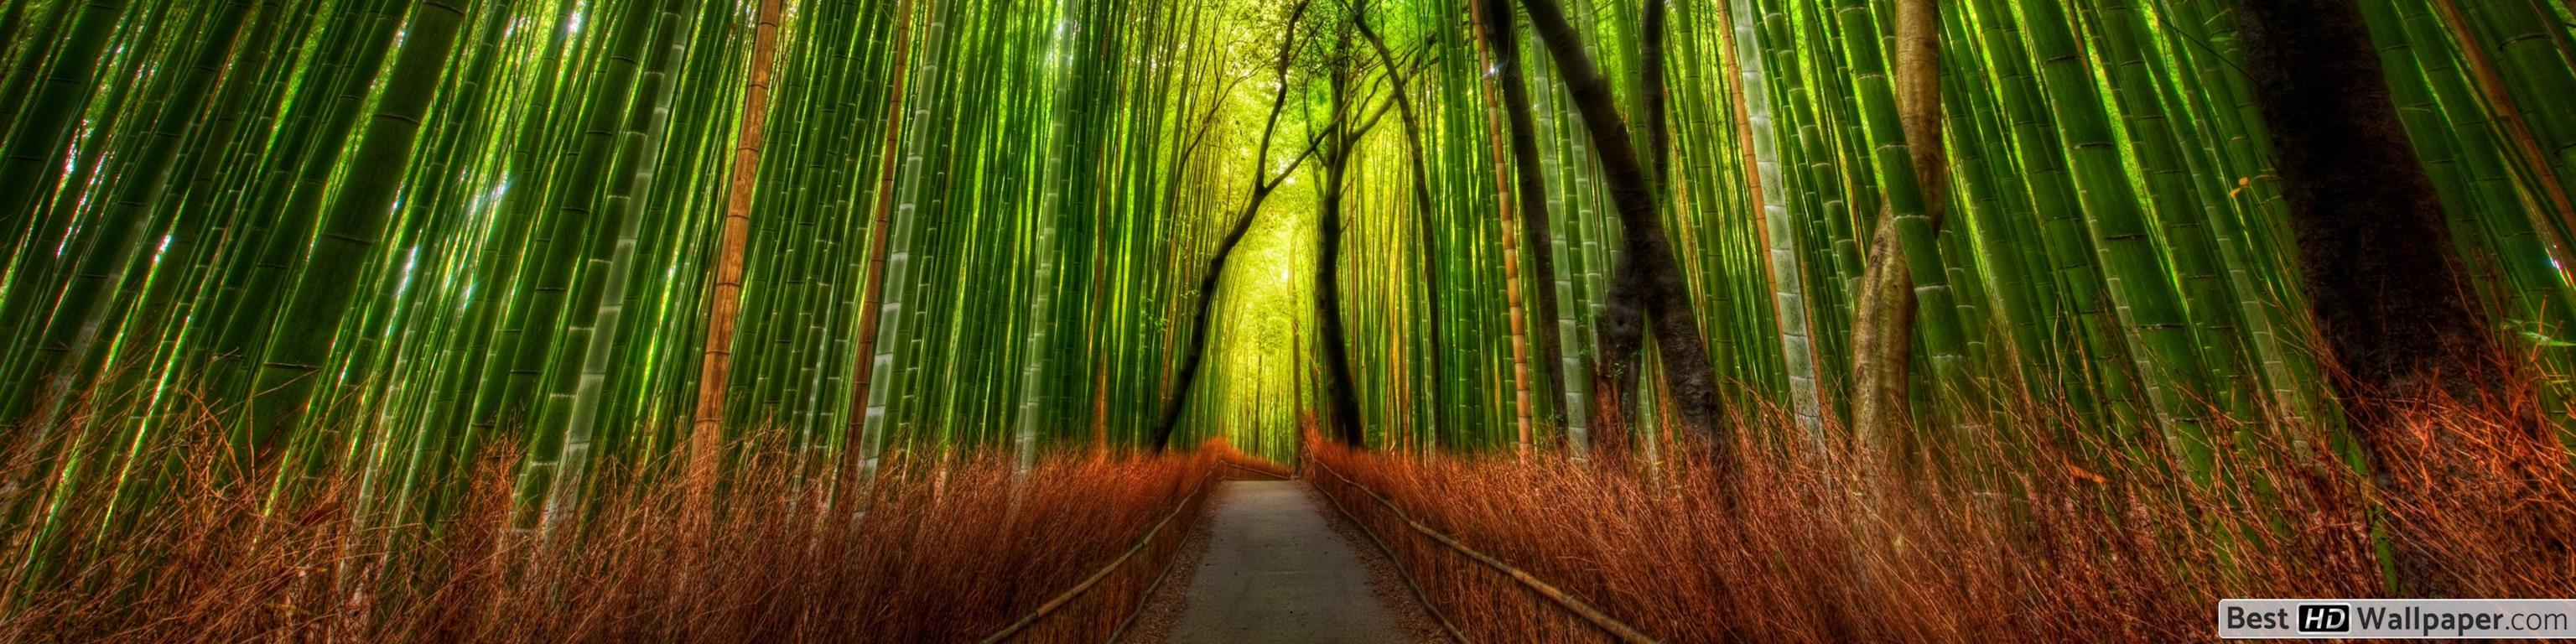 Bamboo trees and forest HD wallpaper download